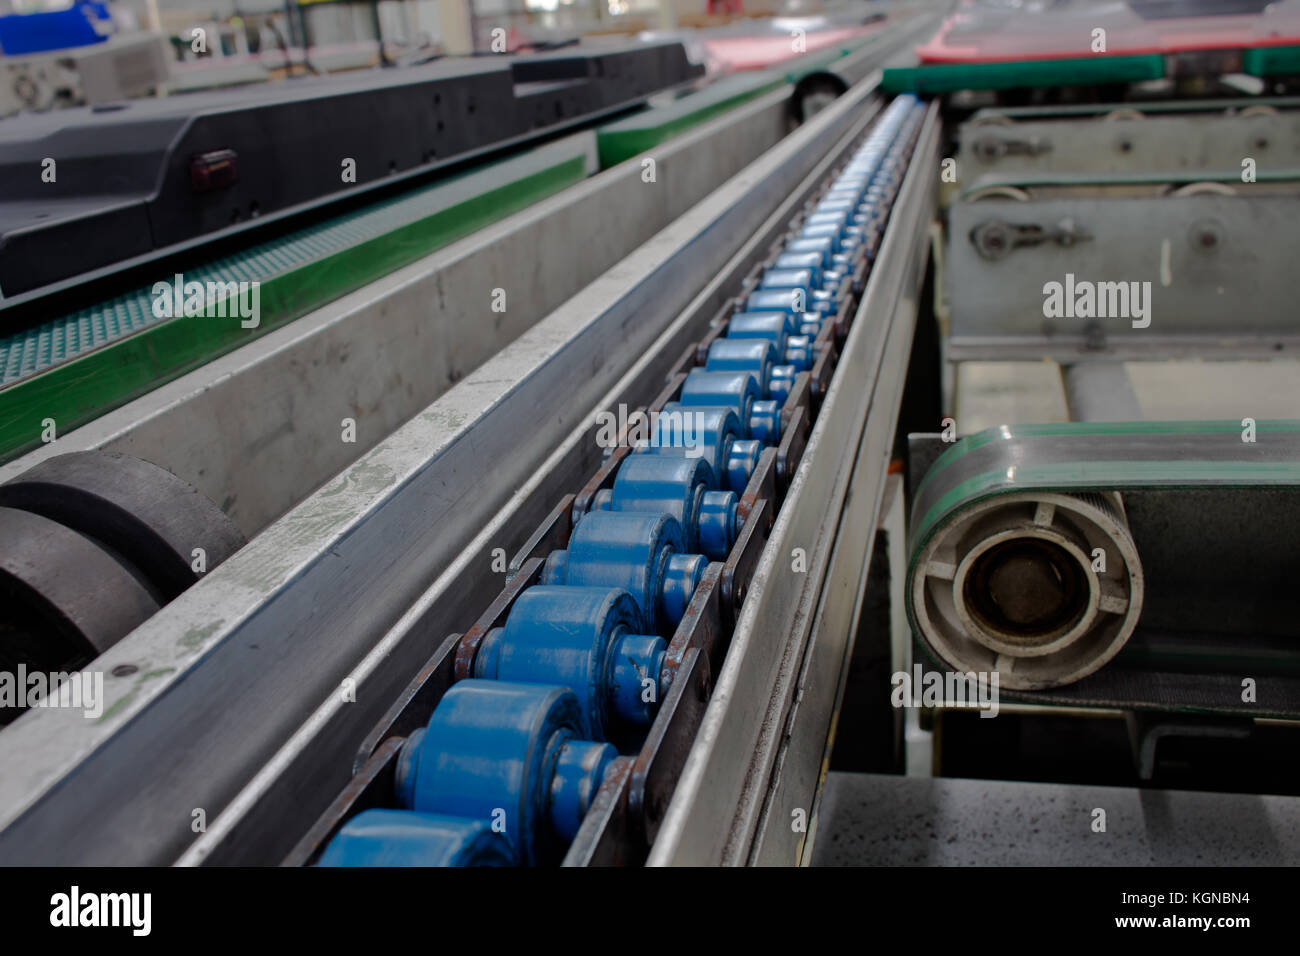 Conveyor in the production line of the factory. - Stock Image